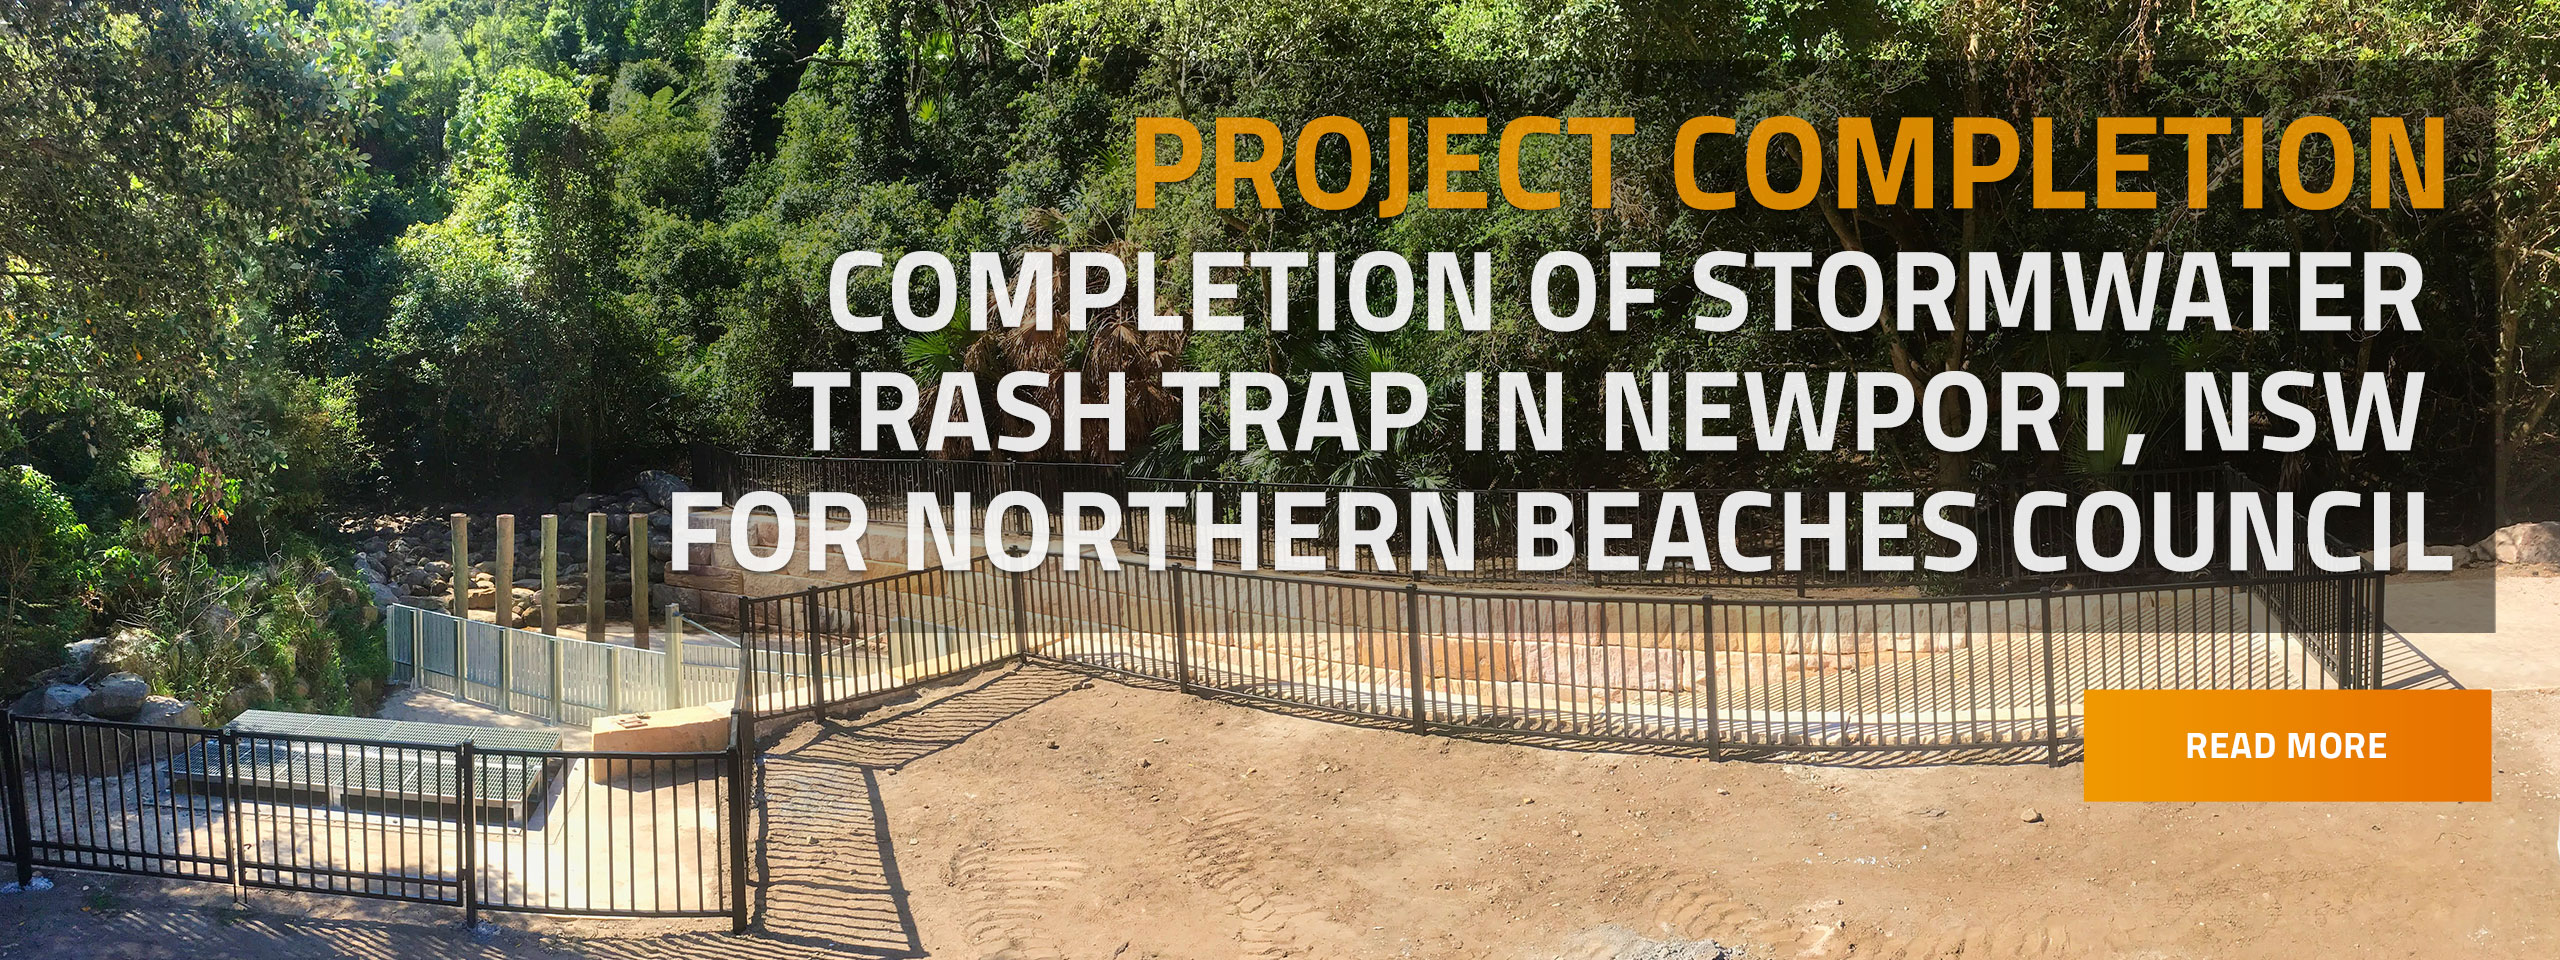 completion-of-stormwater-trash-trap-in-newport-nsw-for-northern-beaches-council